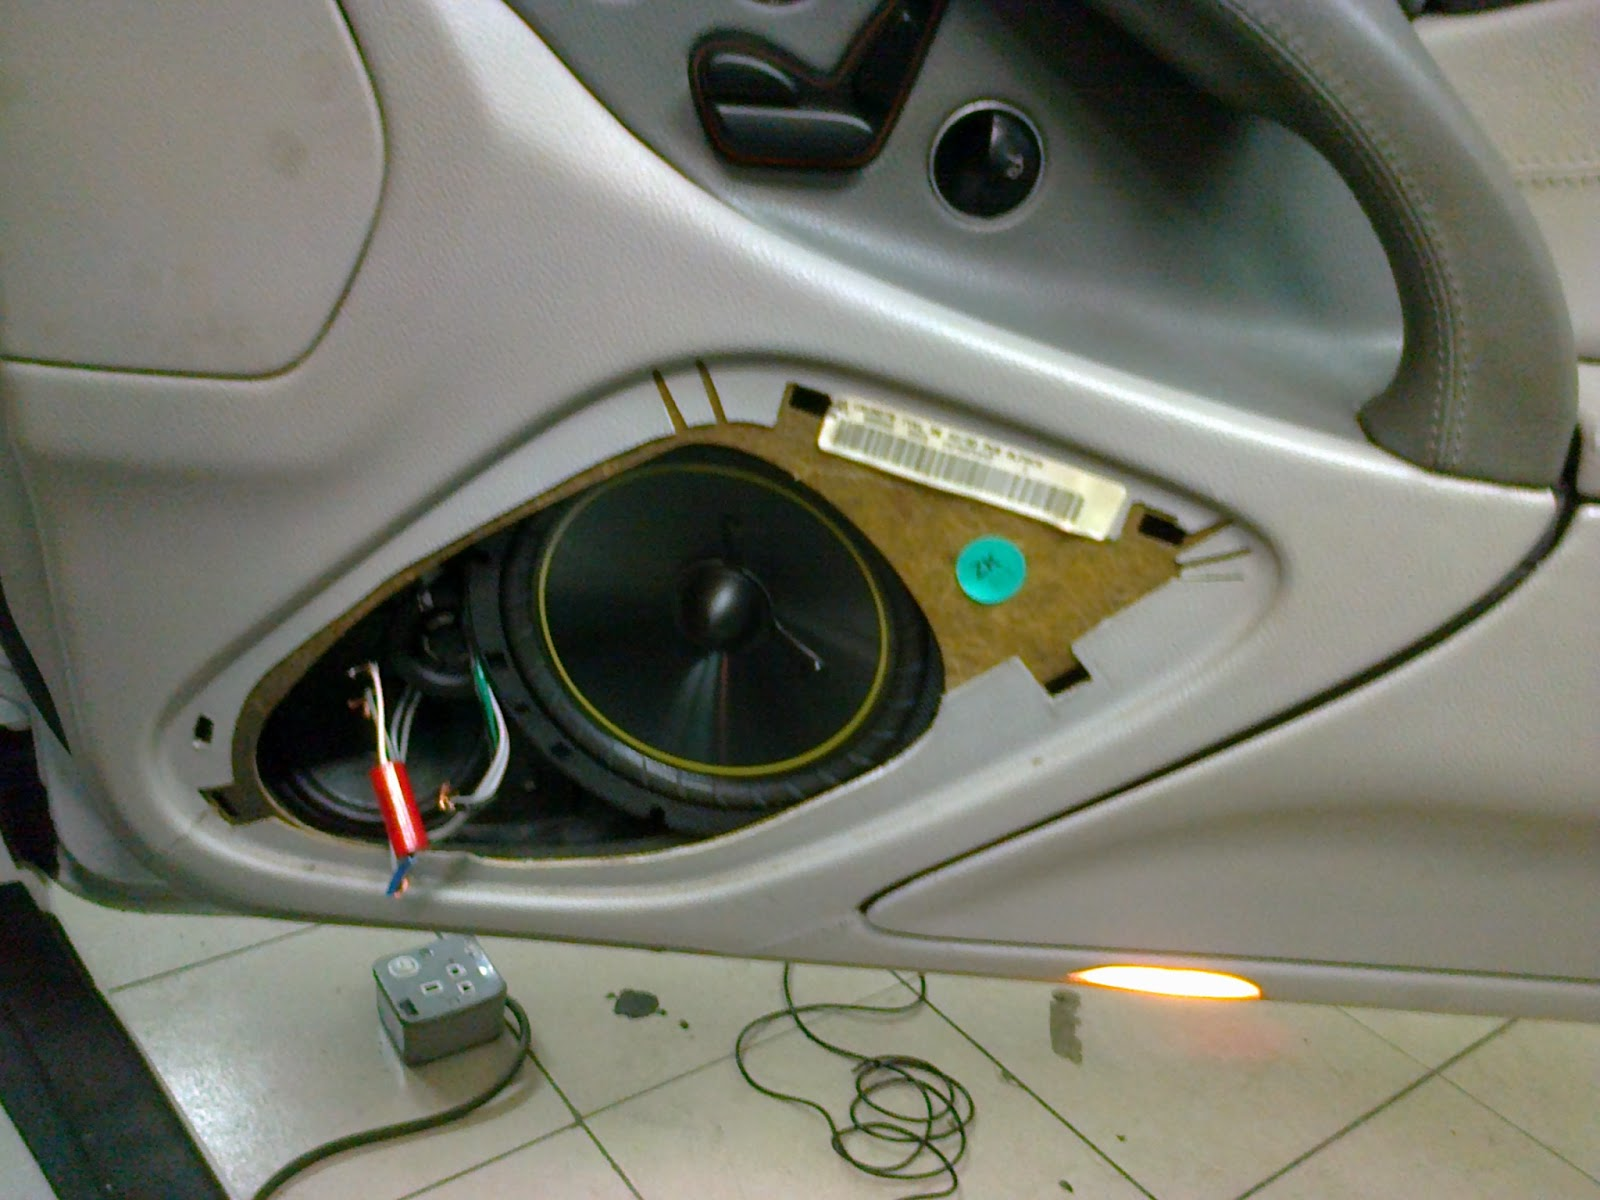 Eb audio mercedes benz sl class dvd gps and car audio upgrade for Mercedes benz car audio